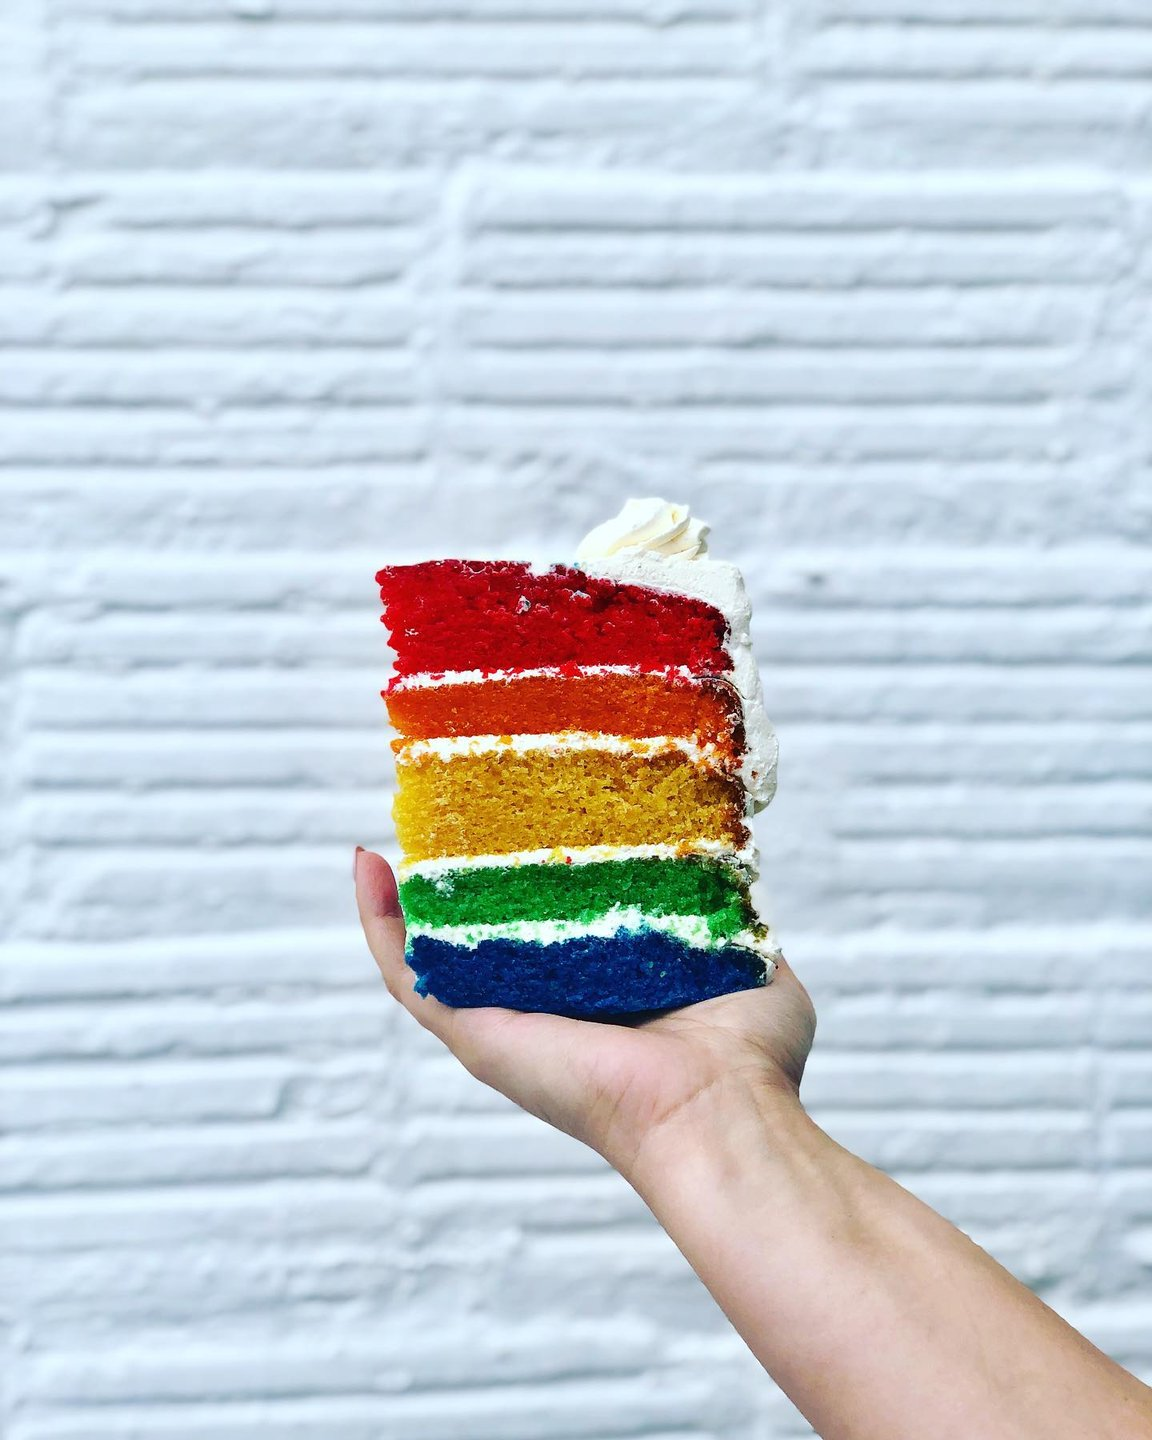 Don't be afraid to to show your true colors. 🏳️🌈  We're kicking off St. Pete Pride week with this vegan cake from valhallabakery_stpete! These treats are always a rainbow in our clouds. 🌈 . . . . . .  . #dtsp #downtownstpete #stpetefl #stpetebeach #stpete #stpetersburg #stpeteeats #stpetefoodie #stpetefoodies #stpeteblogger #stpeteinfluencer #tampa #tampafl #tampabay #tampaeats #tampabayeats #tampablogger #tampainfluencer #fl #florida #floridafoodie #floridafoodies #floridablogger #steatersburg #sainteatersburg #vegan #stpetepride #lgbtq #equality #pride